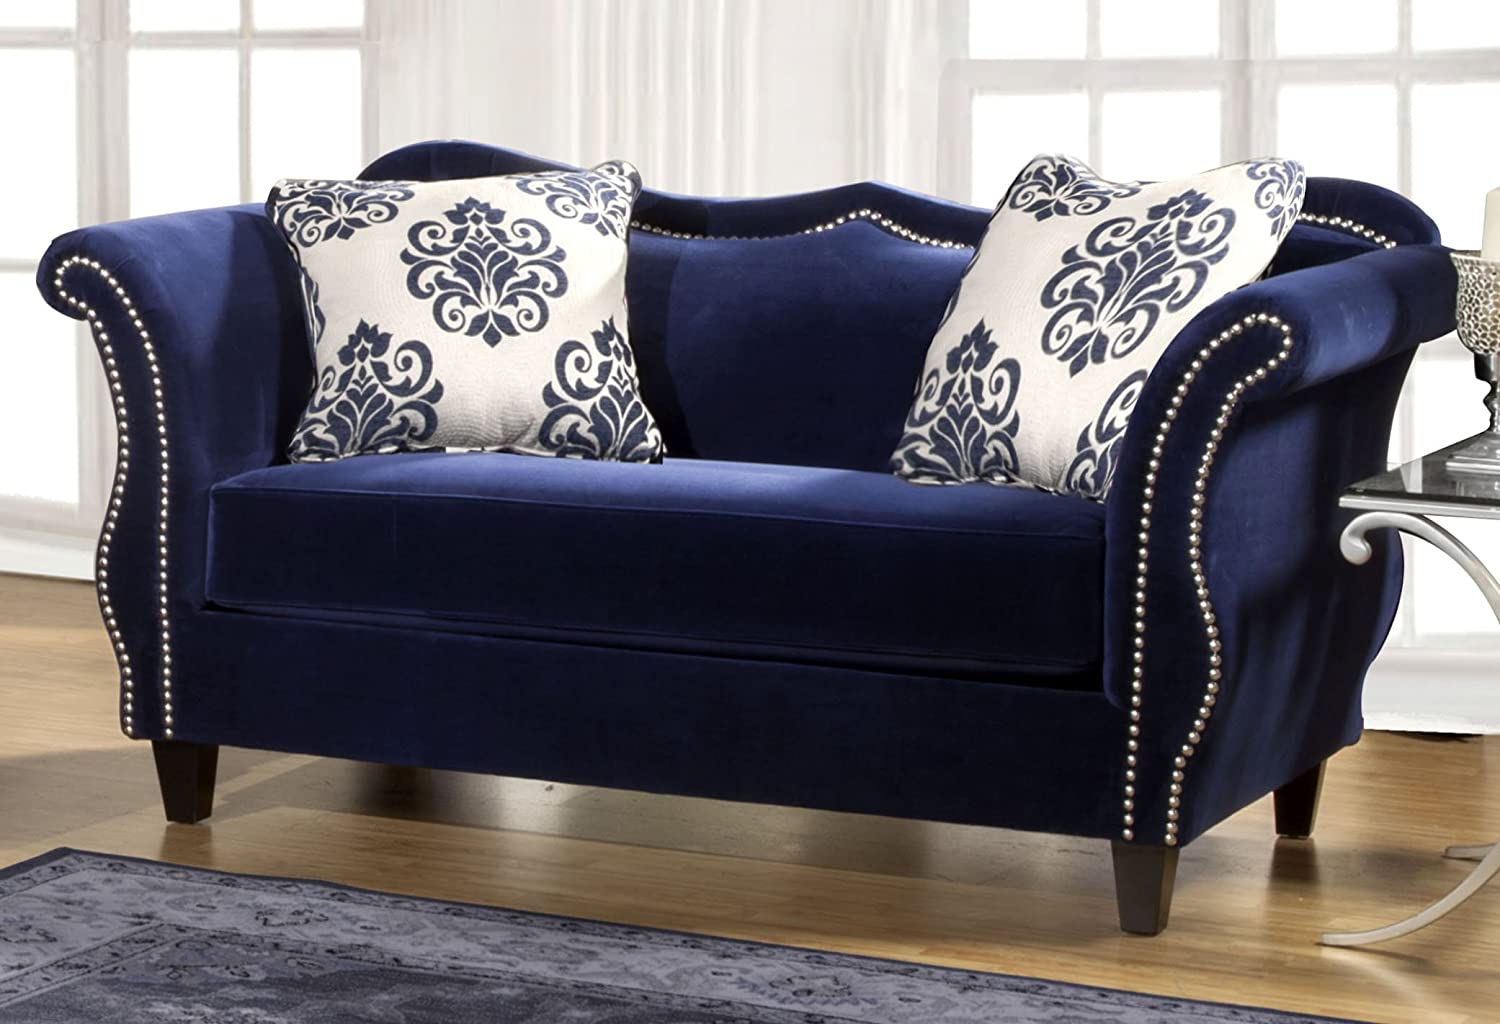 Furniture of America Athena Glamorous Loveseat - Royal Blue